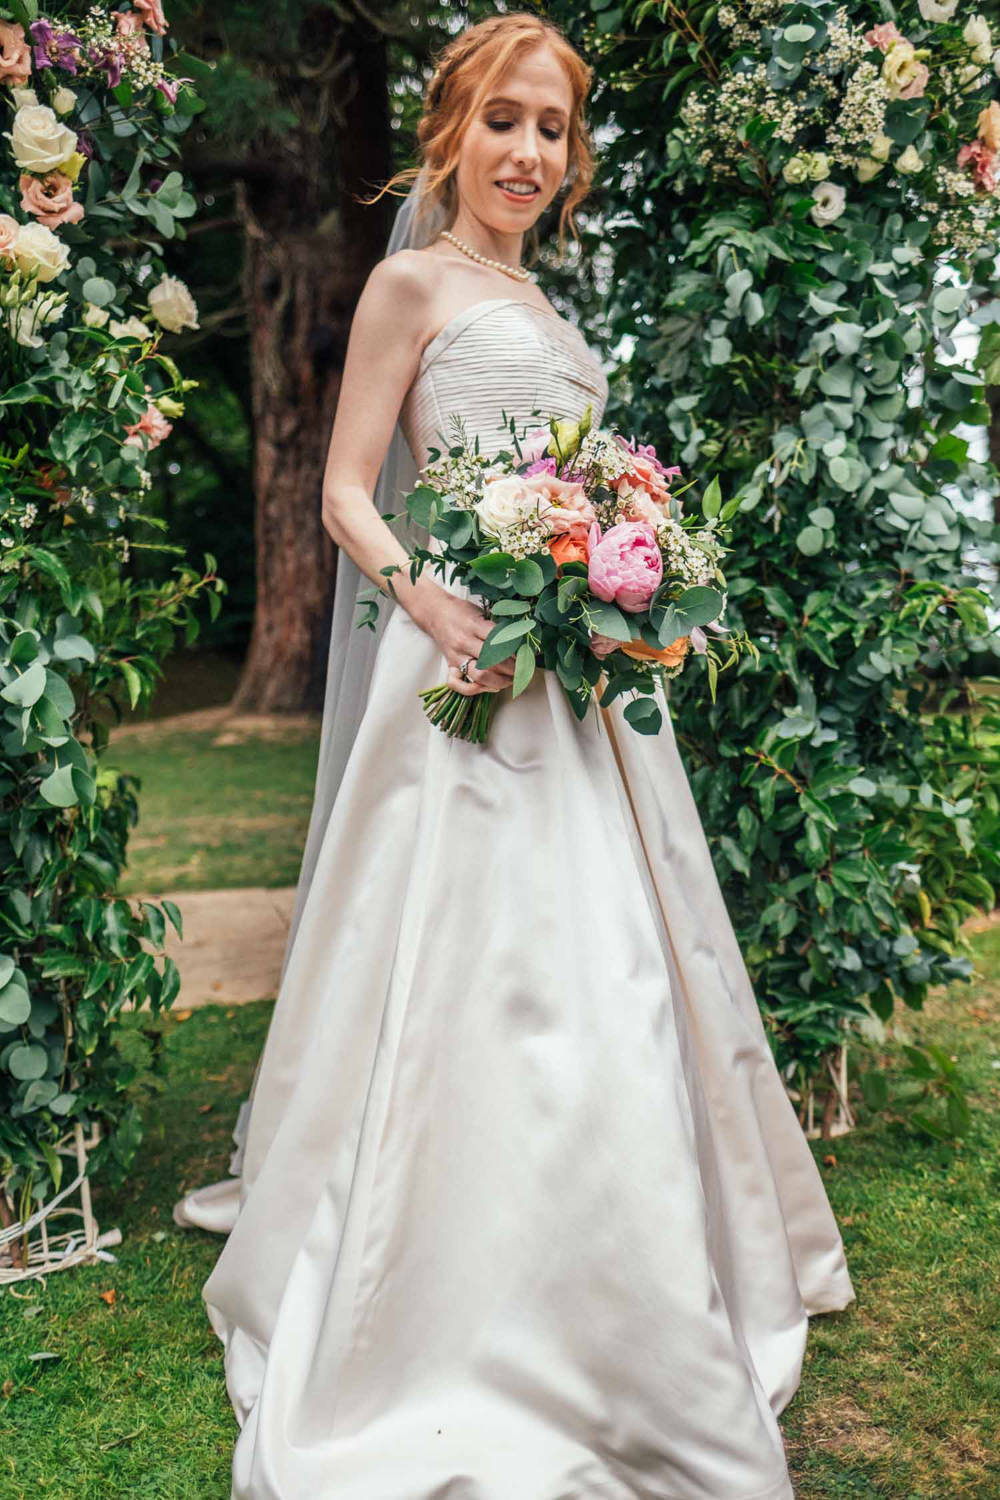 Bride Bridal Dress Gown Strapless Veil Flower Arch Backdrop Tinakilly Country House Wedding Conor Brennan Photography